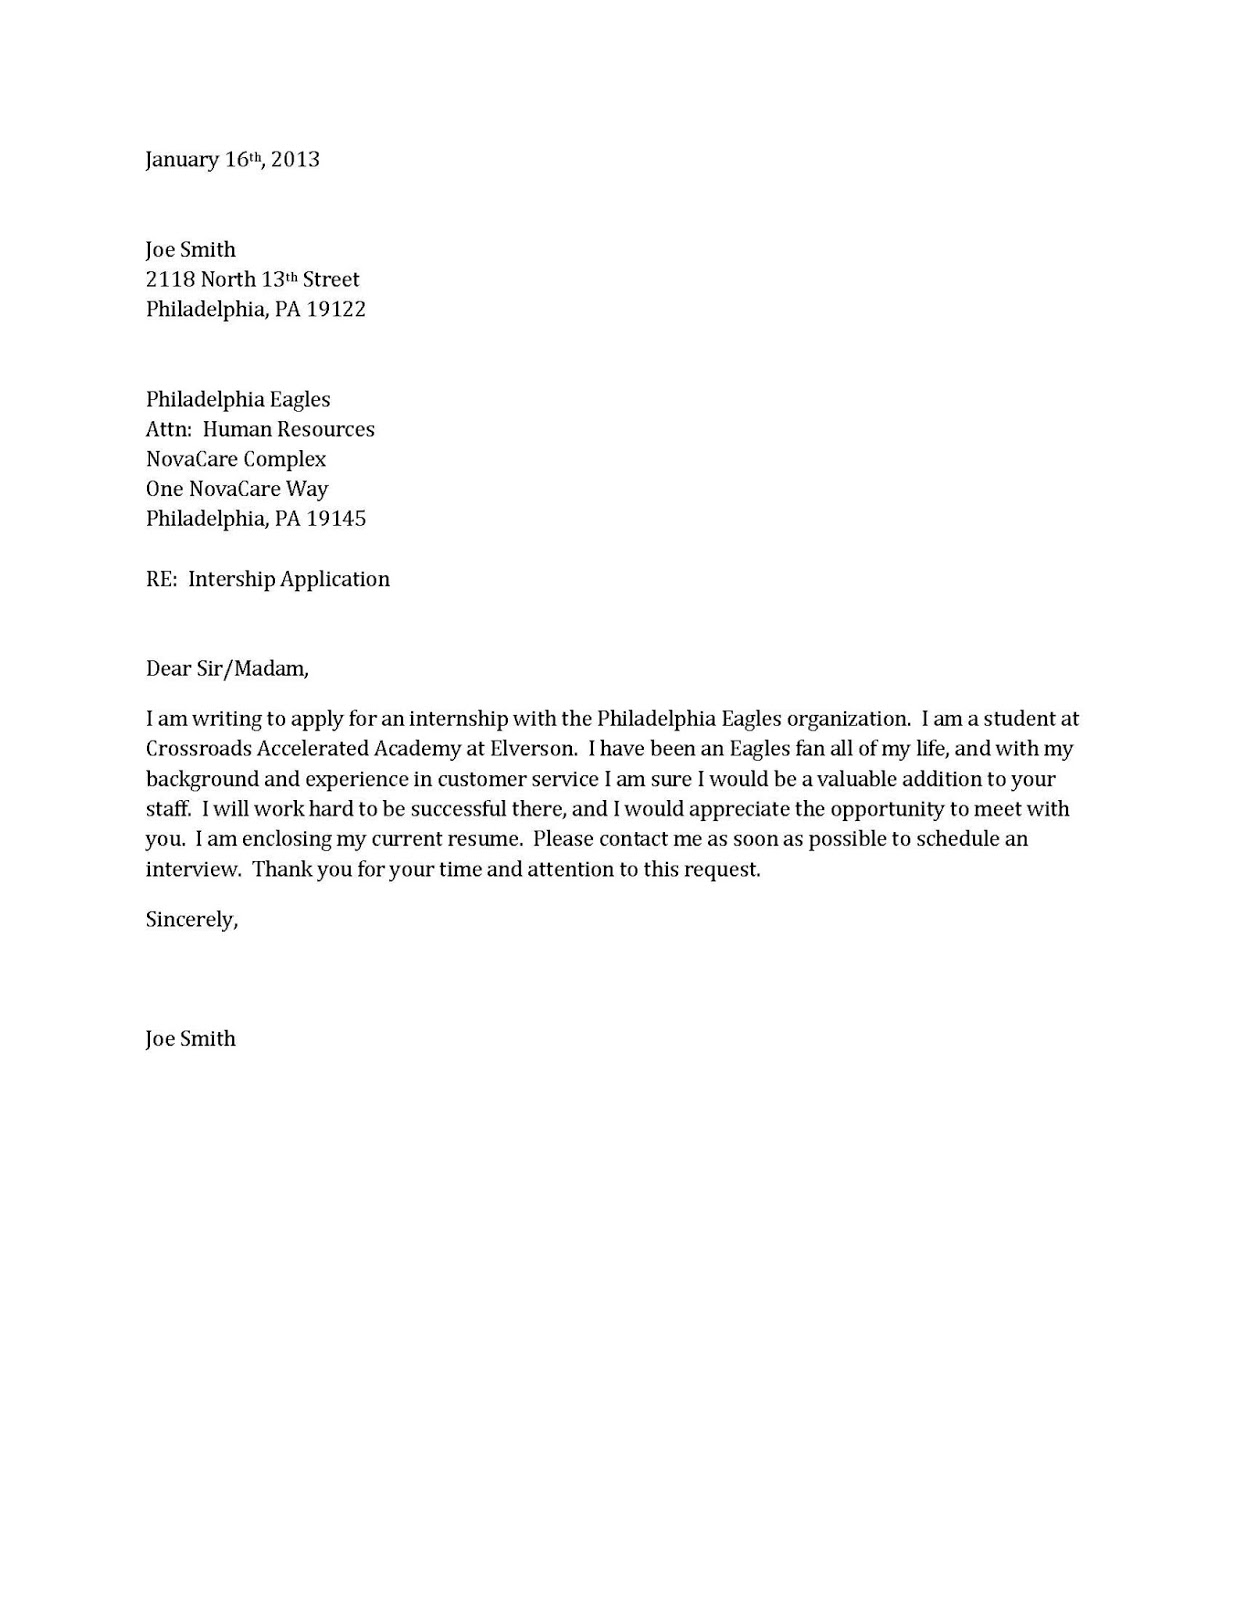 COVER LETTER How to design a cover letter  What is a Cover Letter